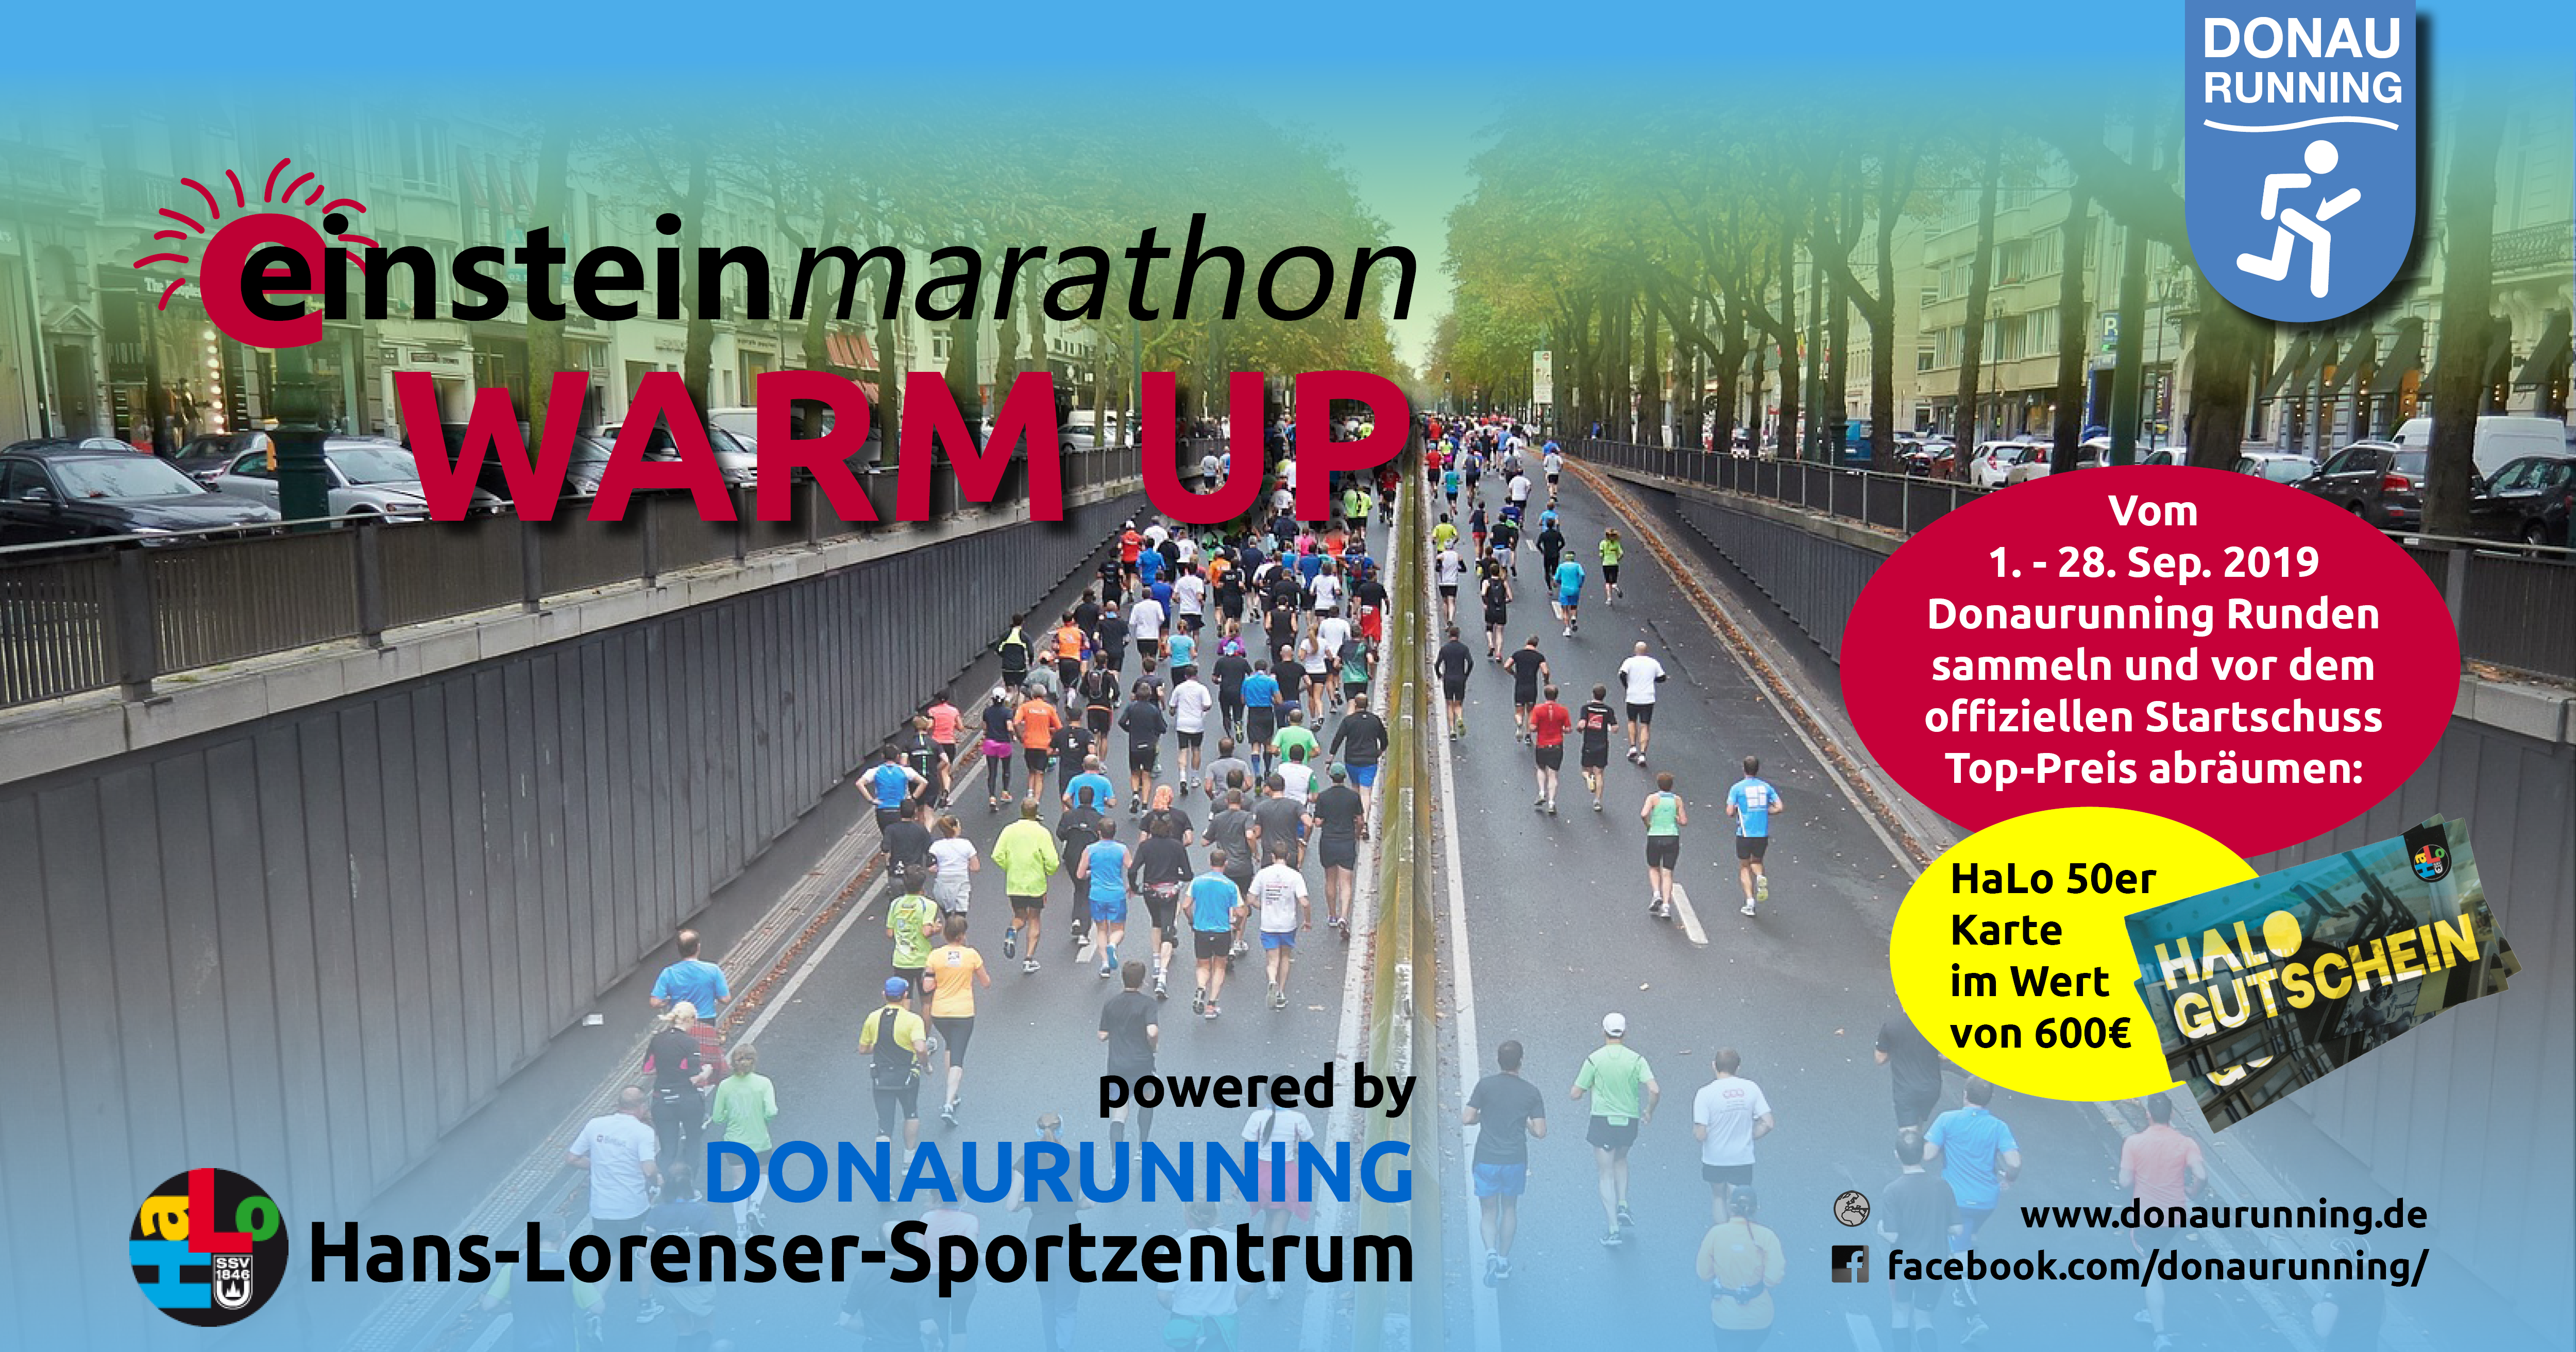 Einstein-Marathon Warm-Up powered by Donaurunning und Hans-Lorenser Sportzentrum